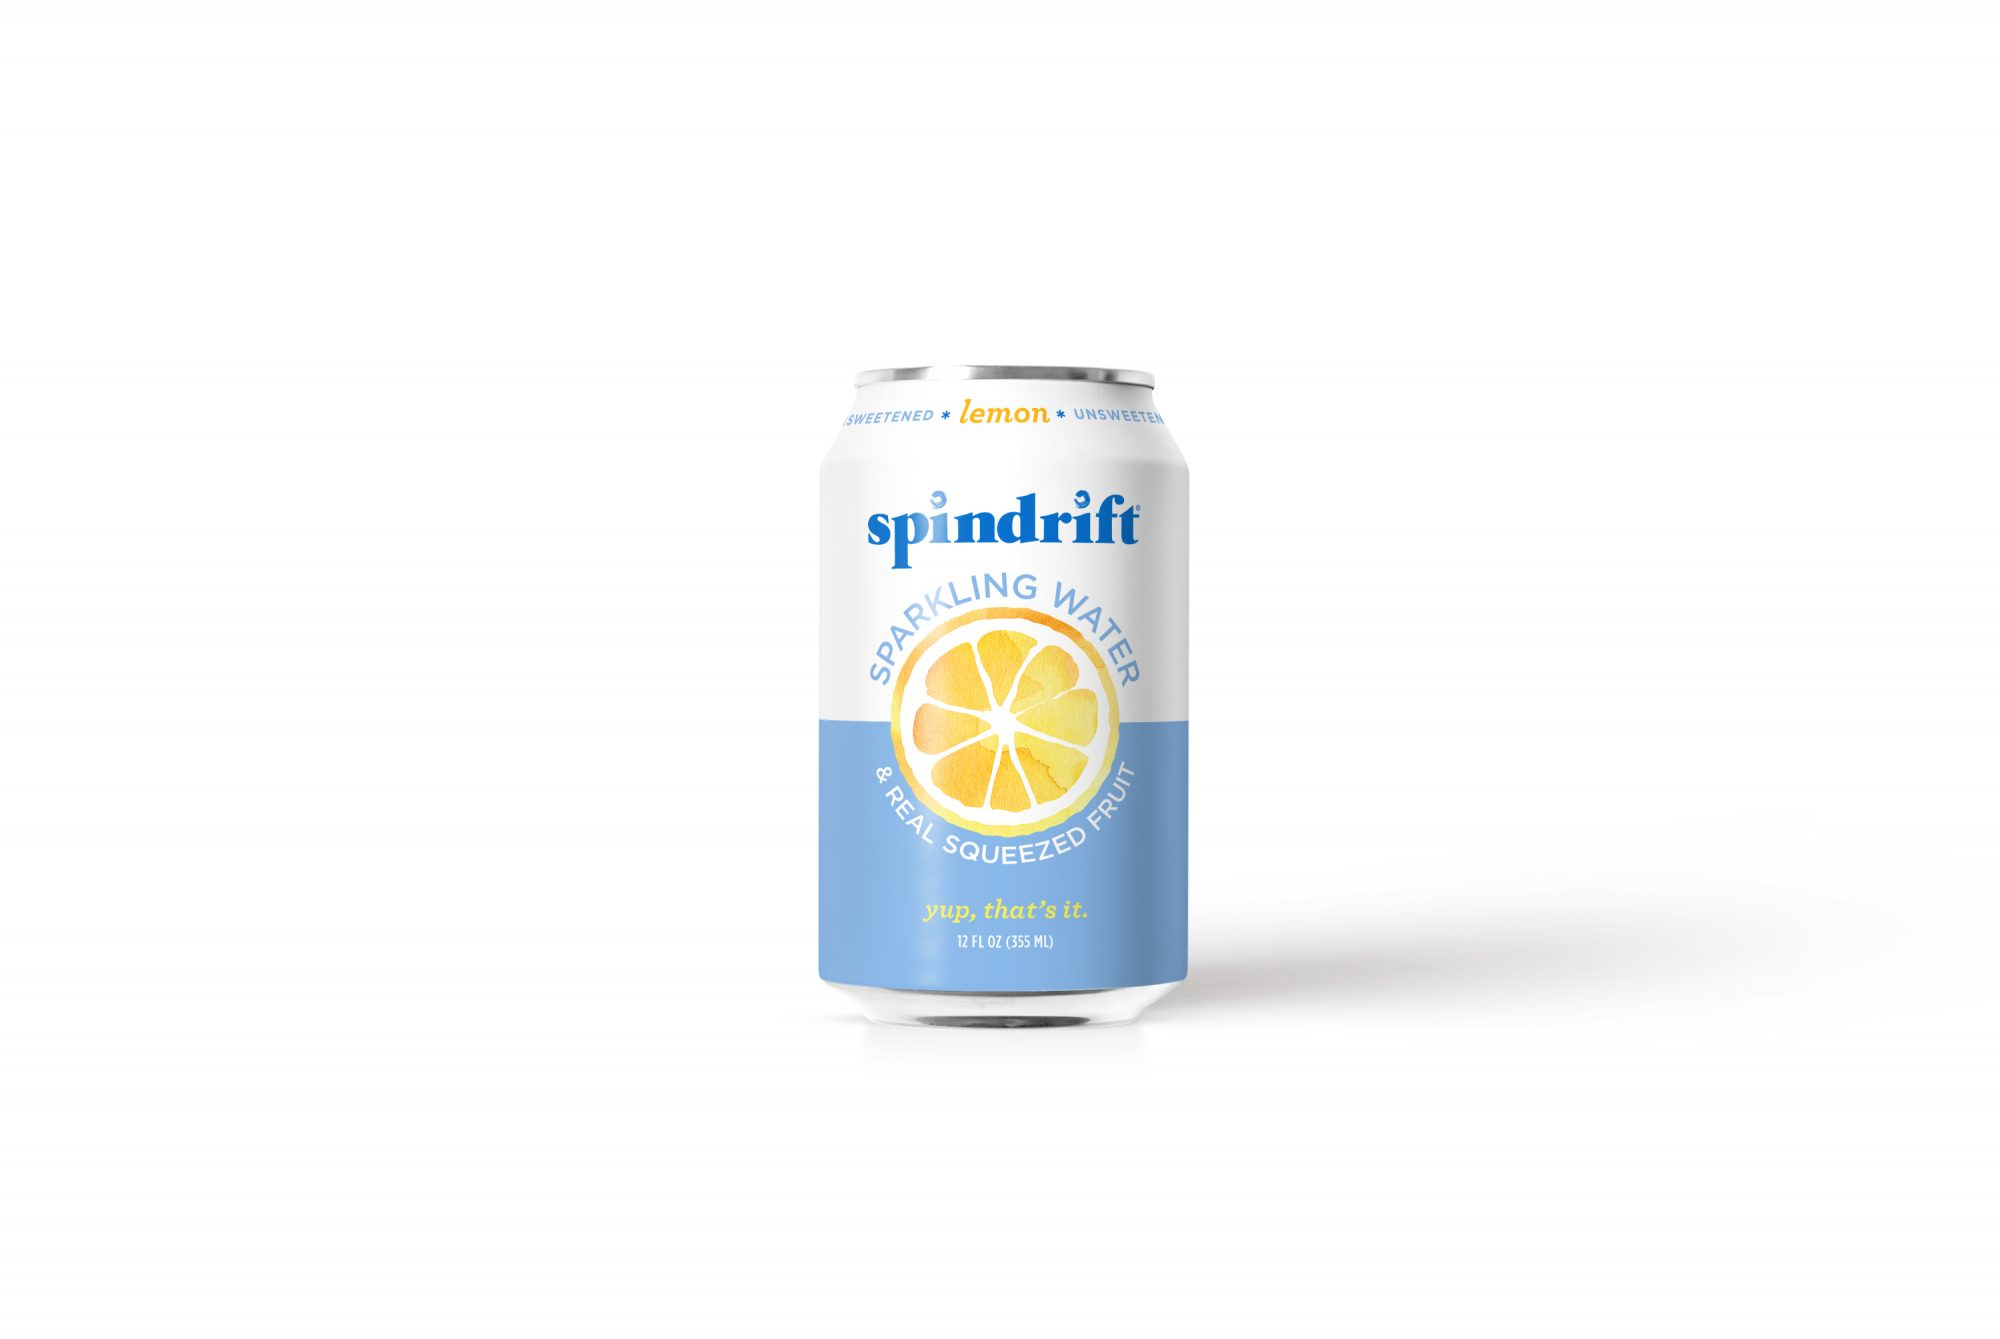 Spindrift_Can_Mockup_Lemon